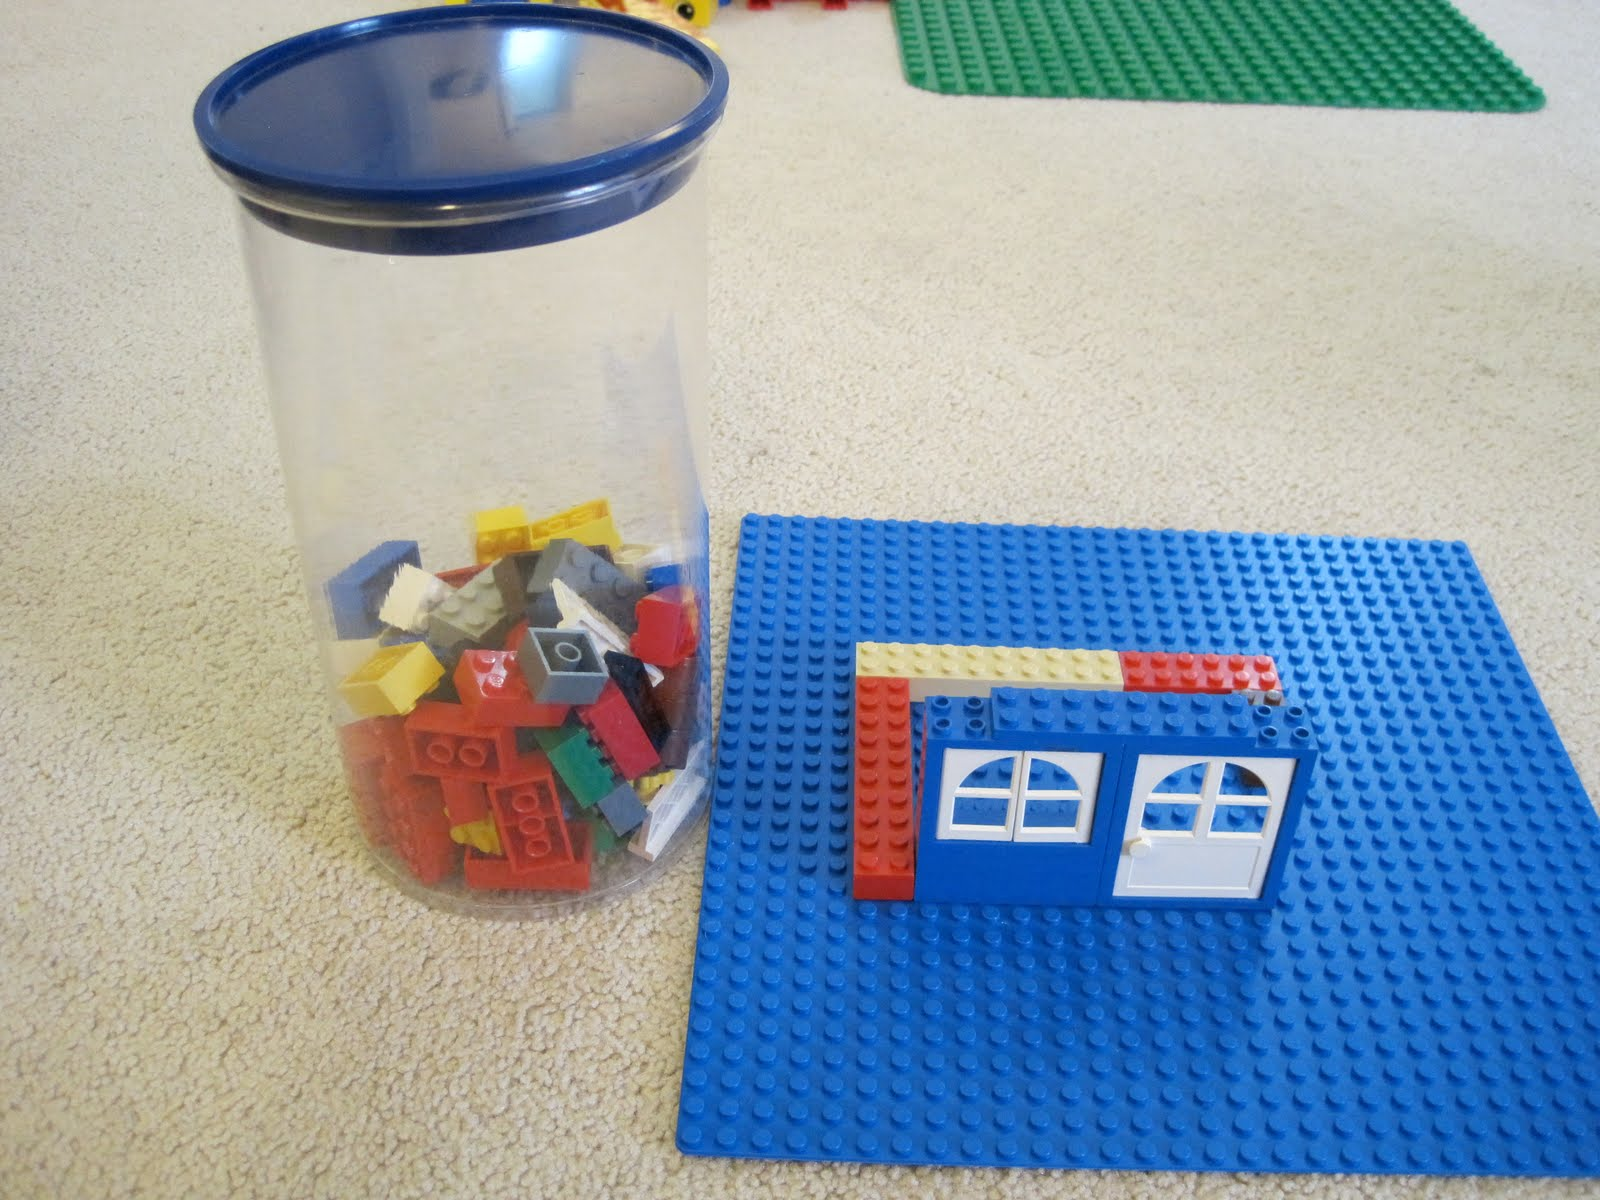 Build a lego house, take off half the bricks and put them aside. When the kids show kindness to each other, they get to add a brick! Great idea to help kids focus on building each other up!